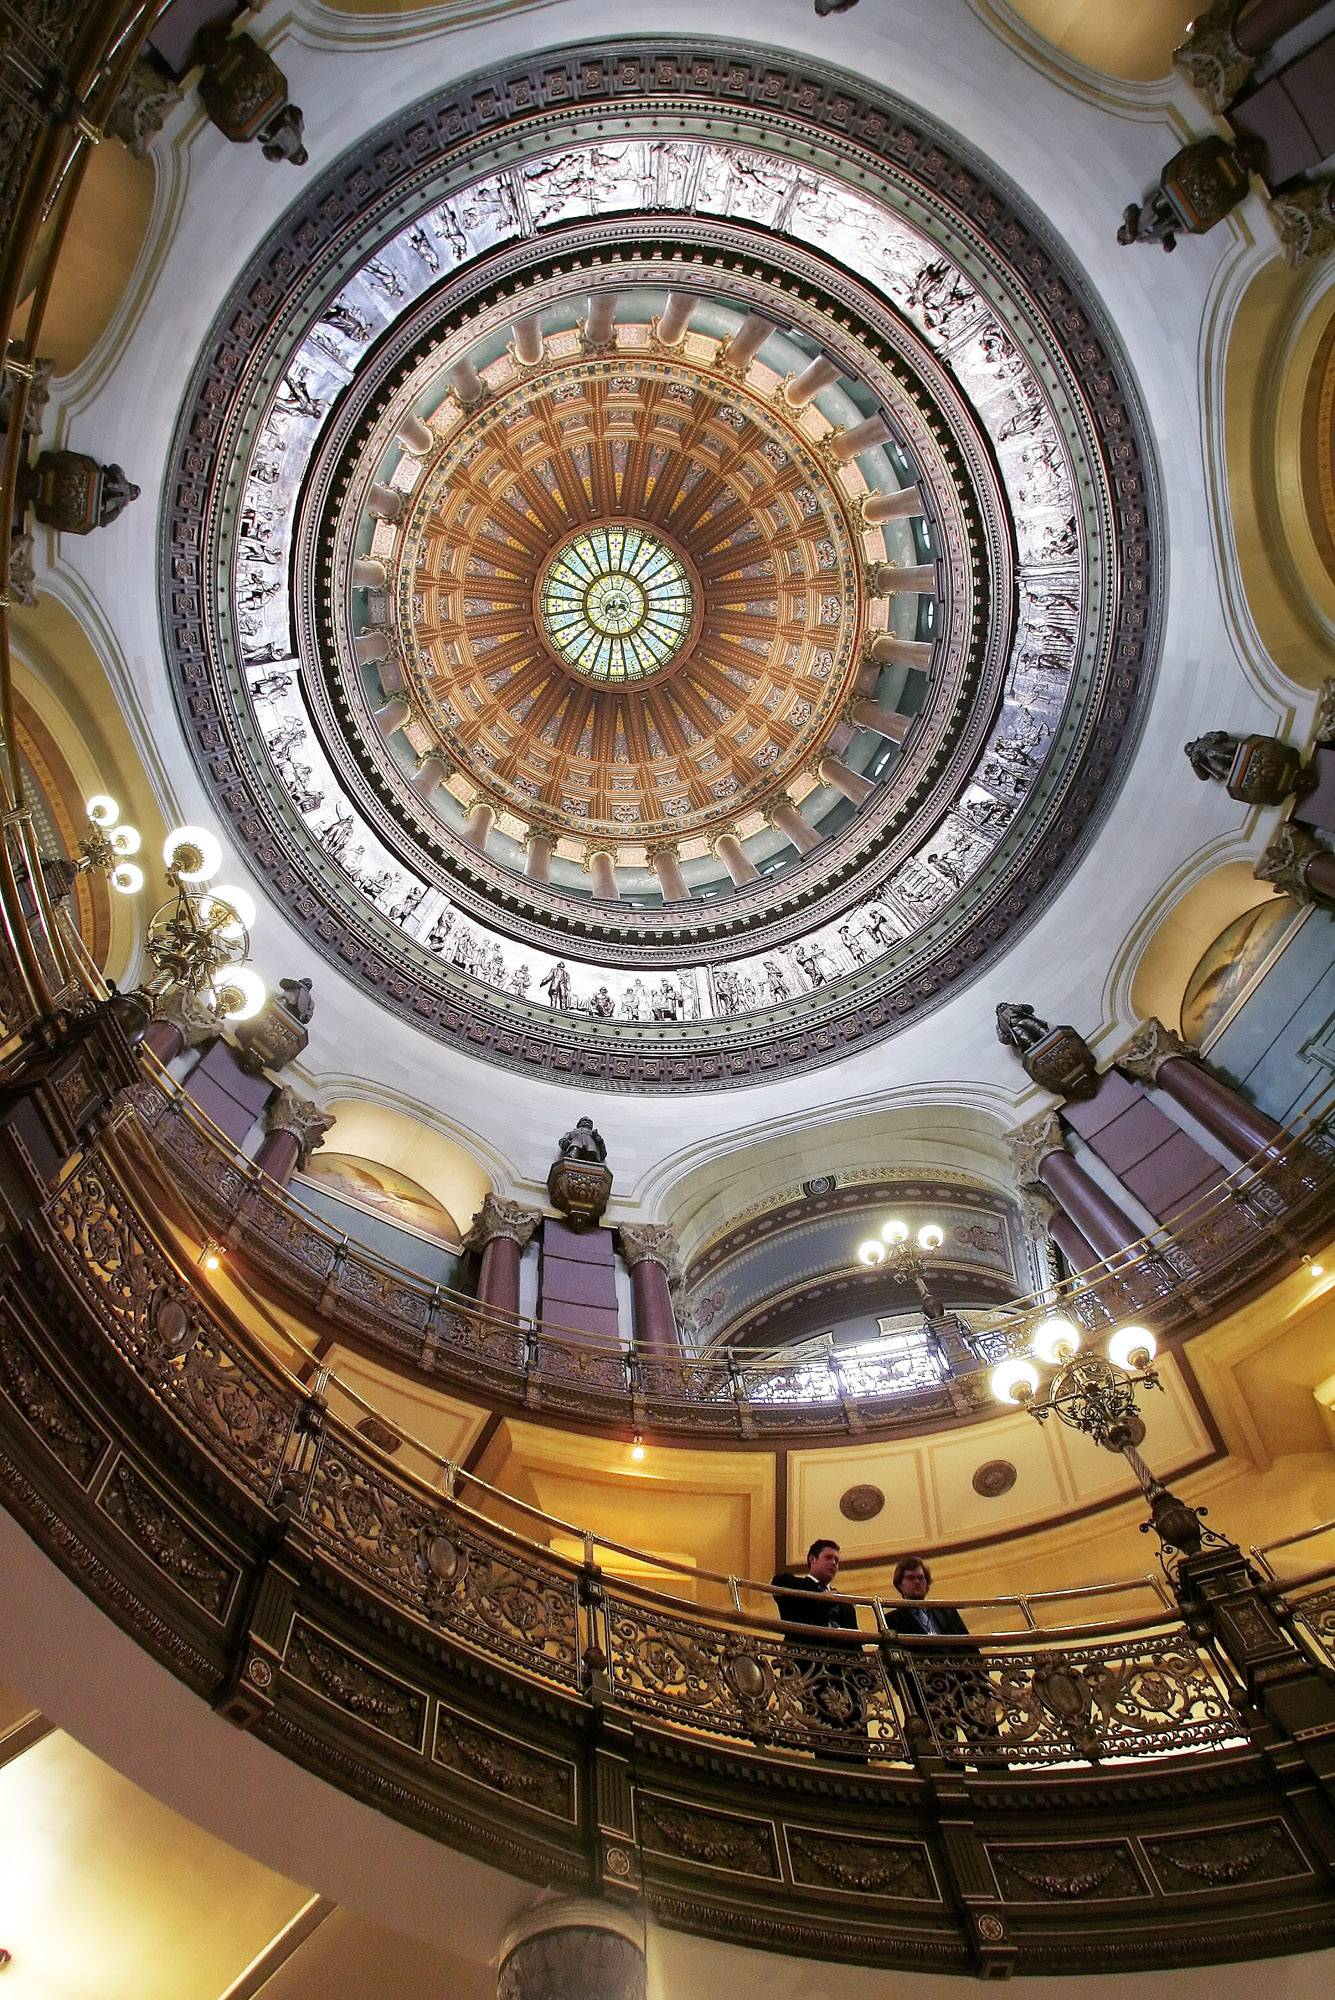 Lawmakers rejected budget cuts Friday, throwing the state's financial future into question for now.